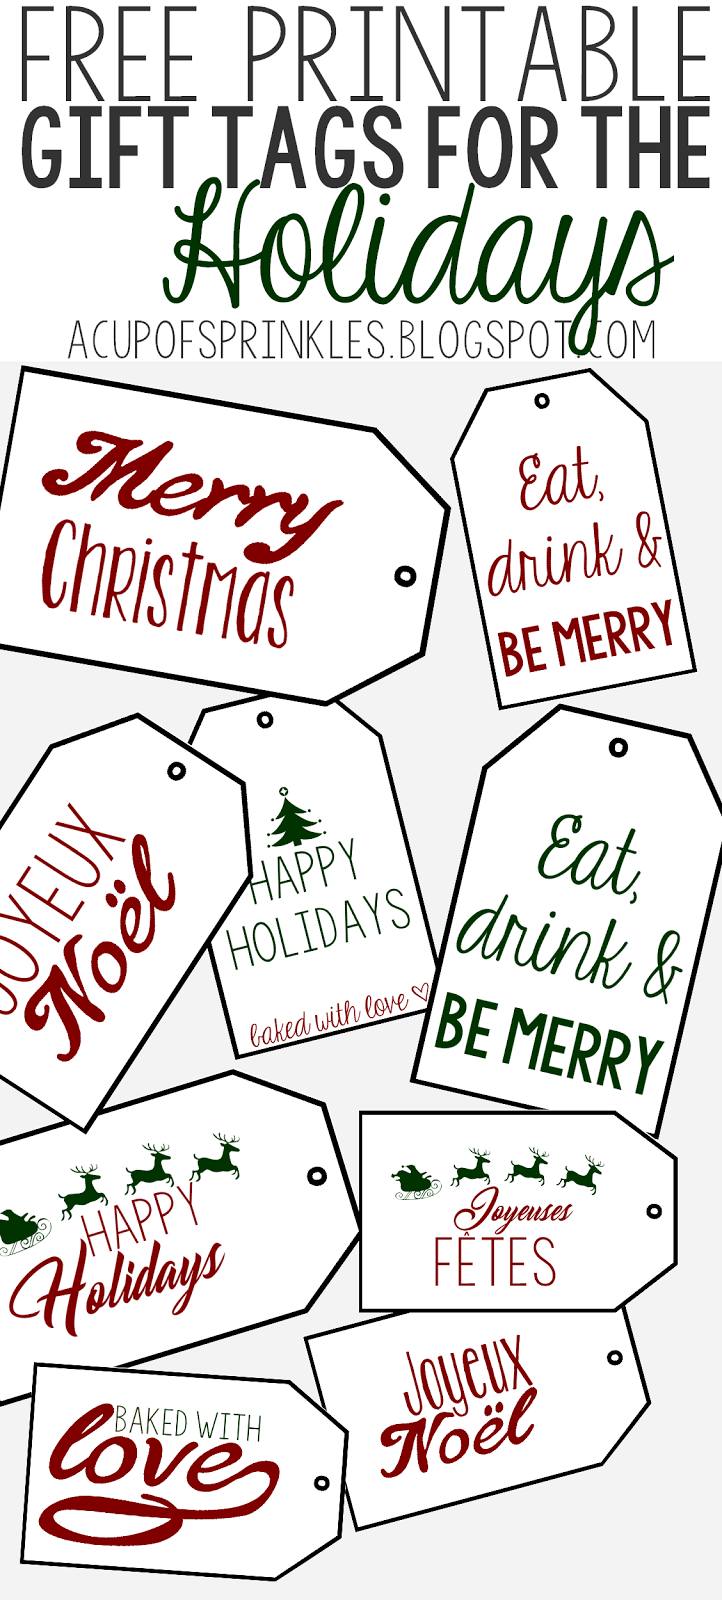 Free Printable Holiday Gift Tags for Baked Goodies